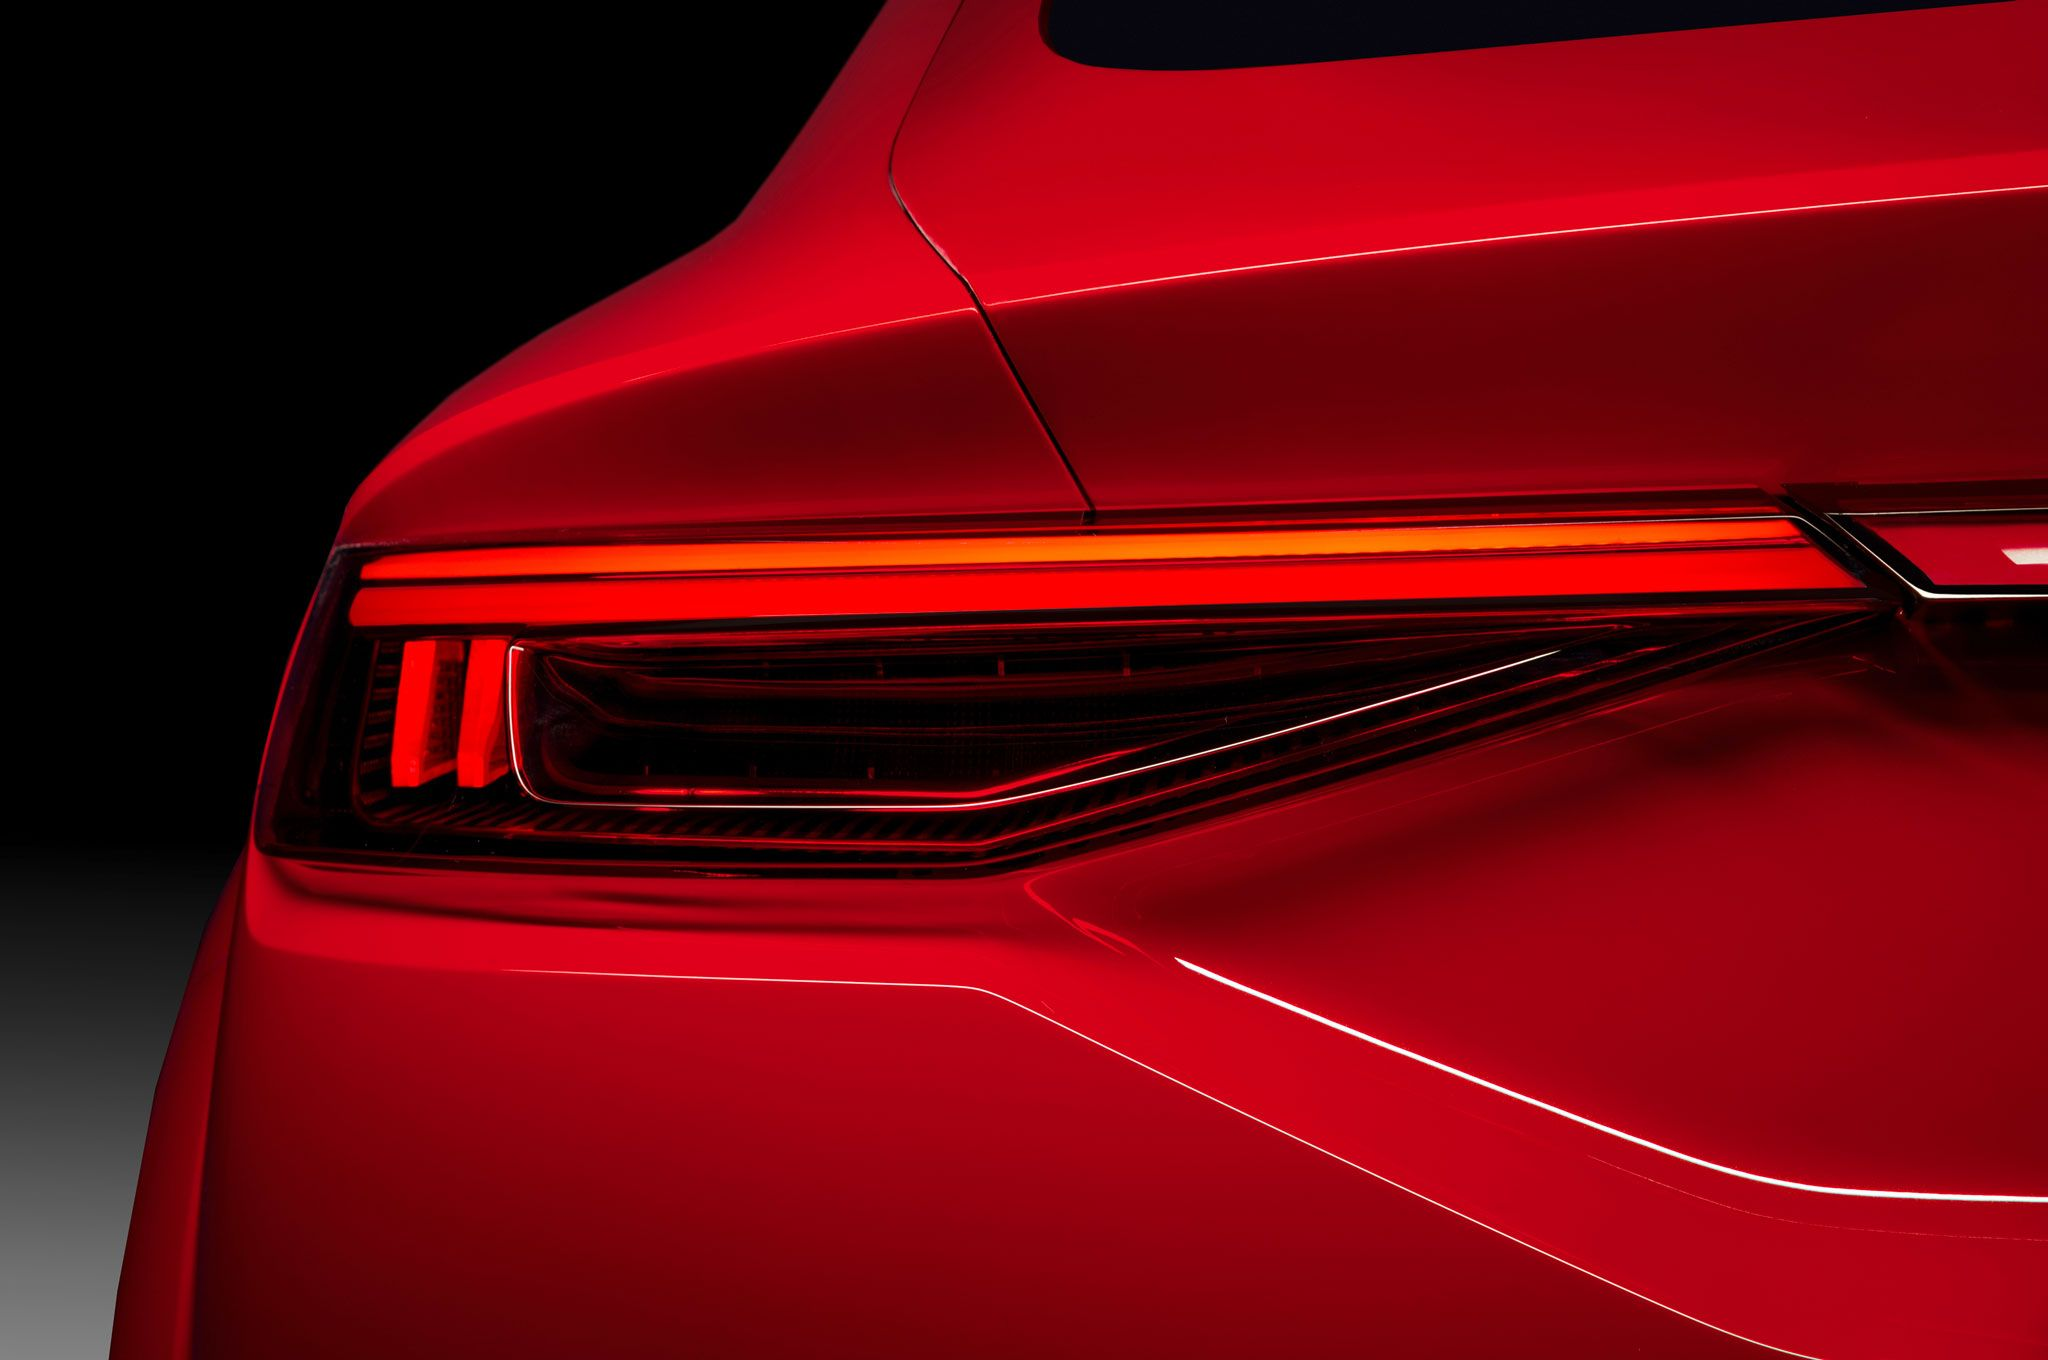 Audi Tail Lights Concept Google Search